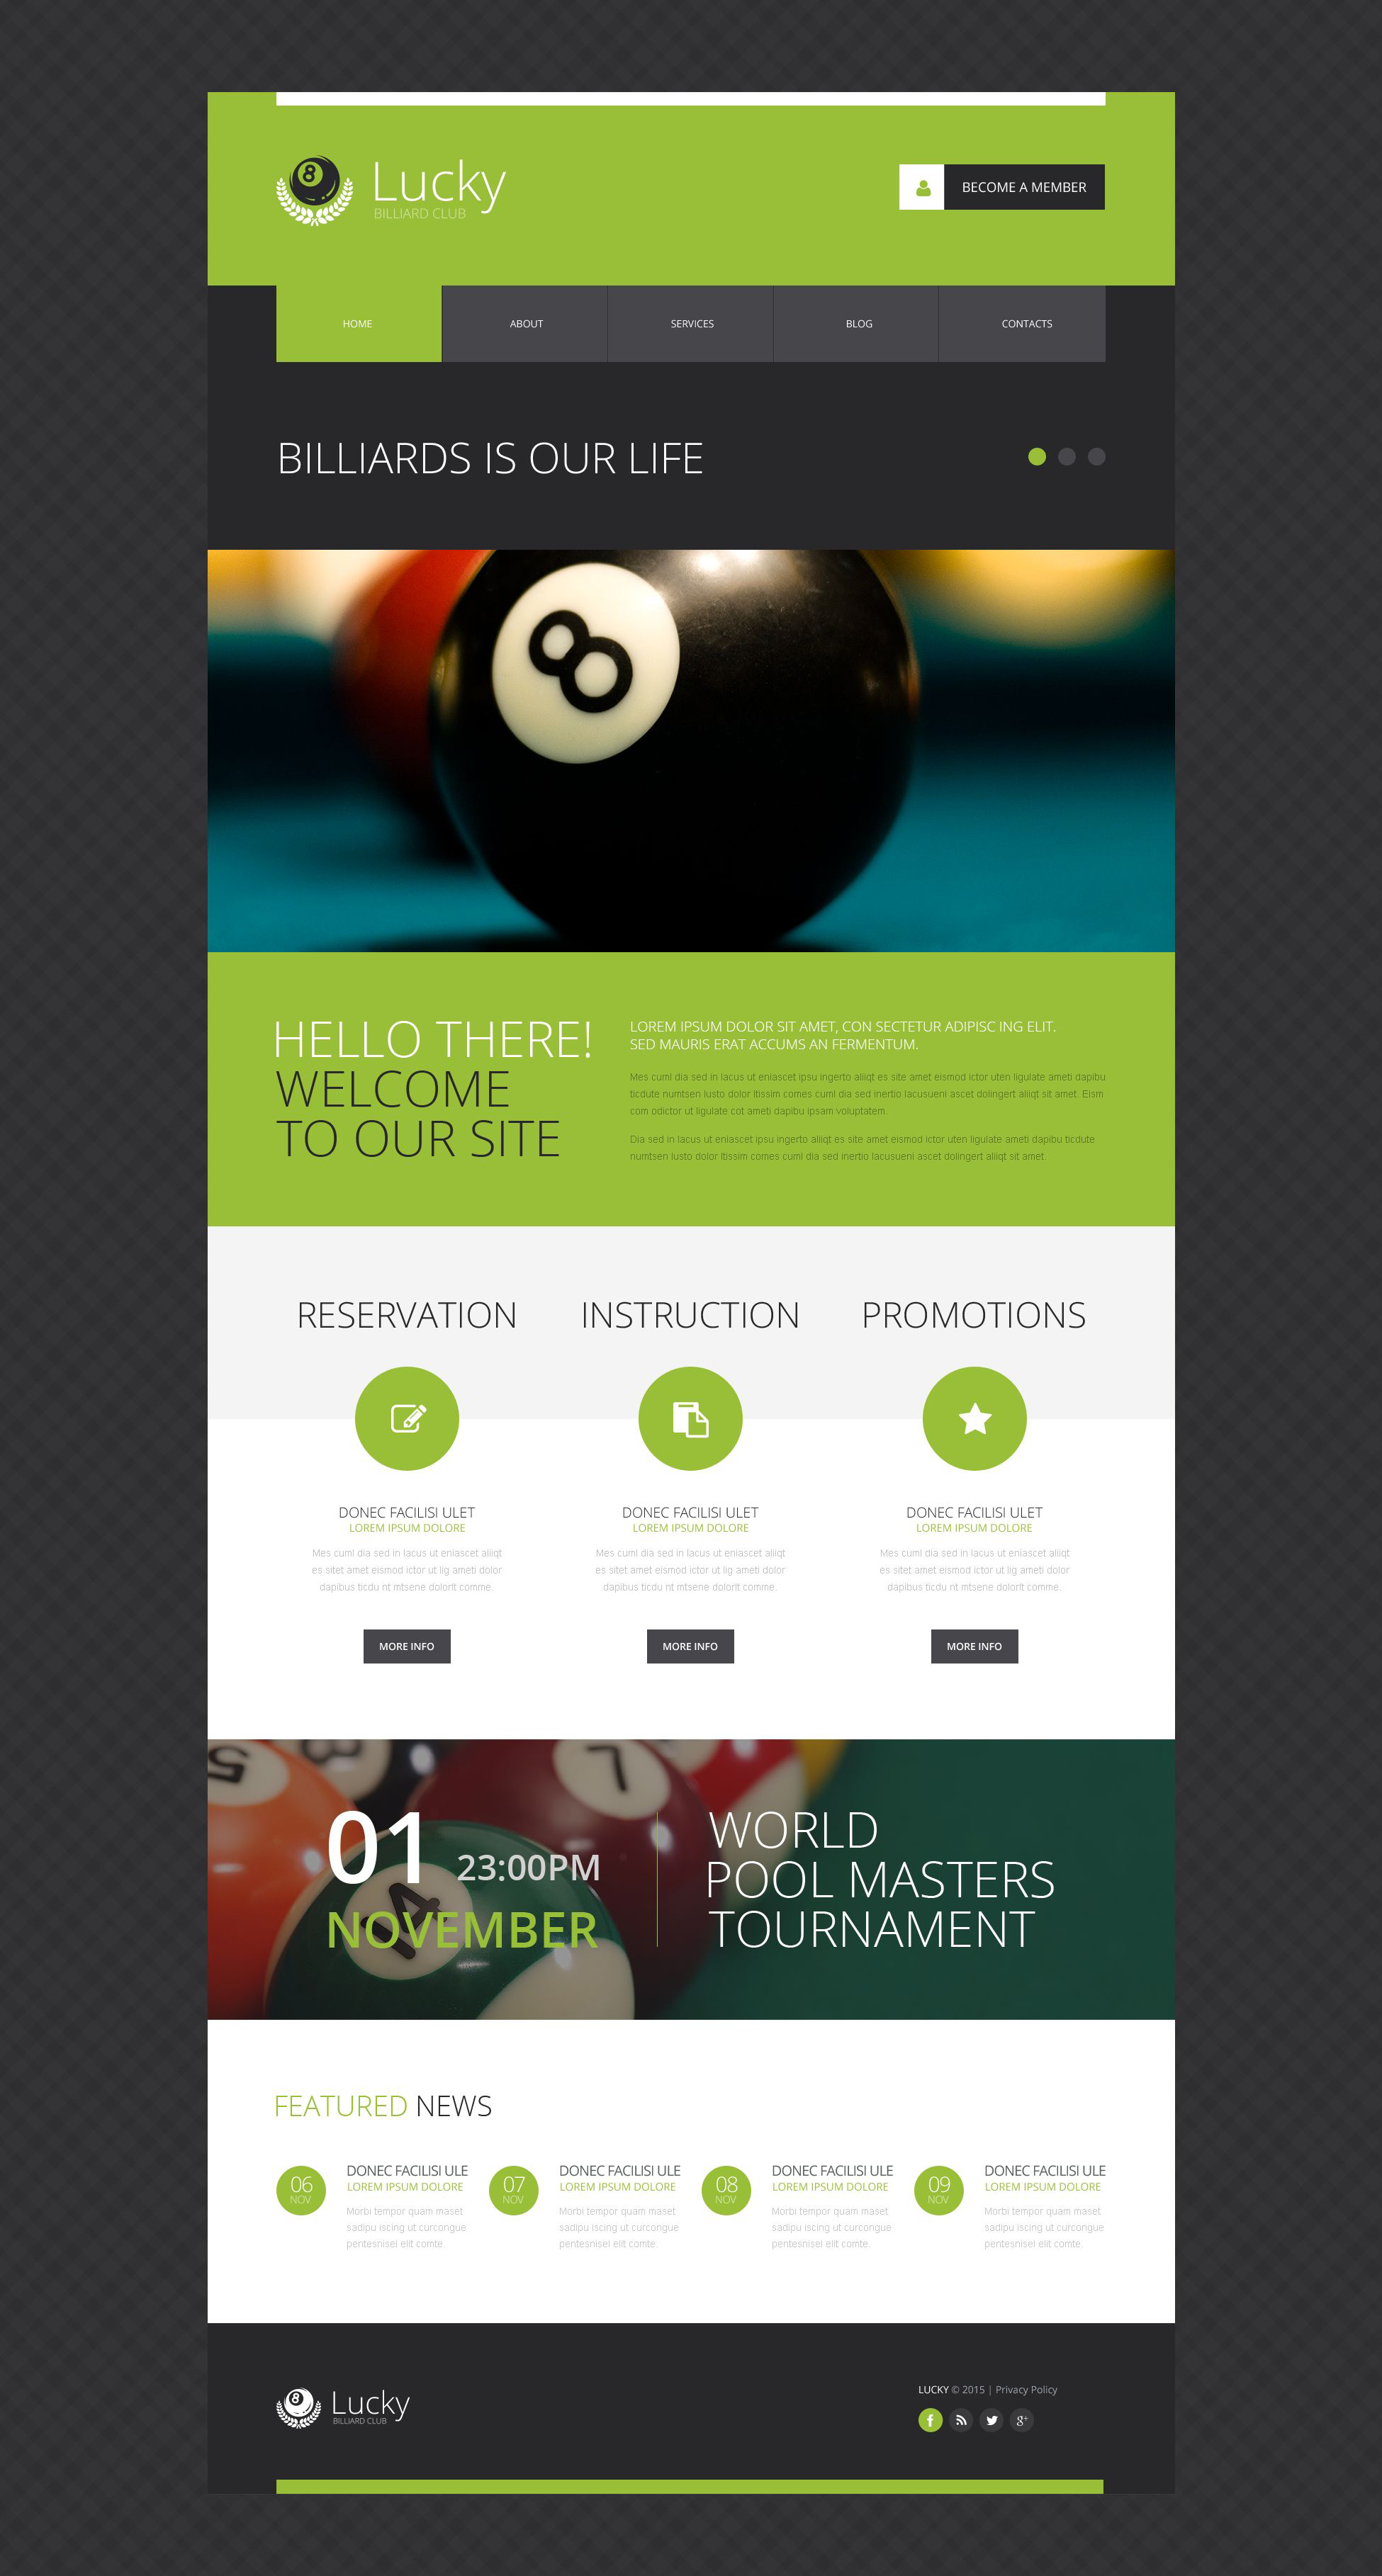 The Lucky Billiard Club Responsive Javascript Animated Design 53274, one of the best website templates of its kind (sport), also known as lucky billiard club website template, sport website template, entertainment website template, site website template, cup-final website template, champions website template, membership website template, leadership website template, team website template, ball website template, cue website template, pocket website template, positions website template, cloth website template, lamps website template, table website template, pool website template, tables website template, accessories website template, furniture website template, books website template, videos website template, coaching website template, teacher website template, principles and related with lucky billiard club, sport, entertainment, site, cup-final, champions, membership, leadership, team, ball, cue, pocket, positions, cloth, lamps, table, pool, tables, accessories, furniture, books, videos, coaching, teacher, principles, etc.